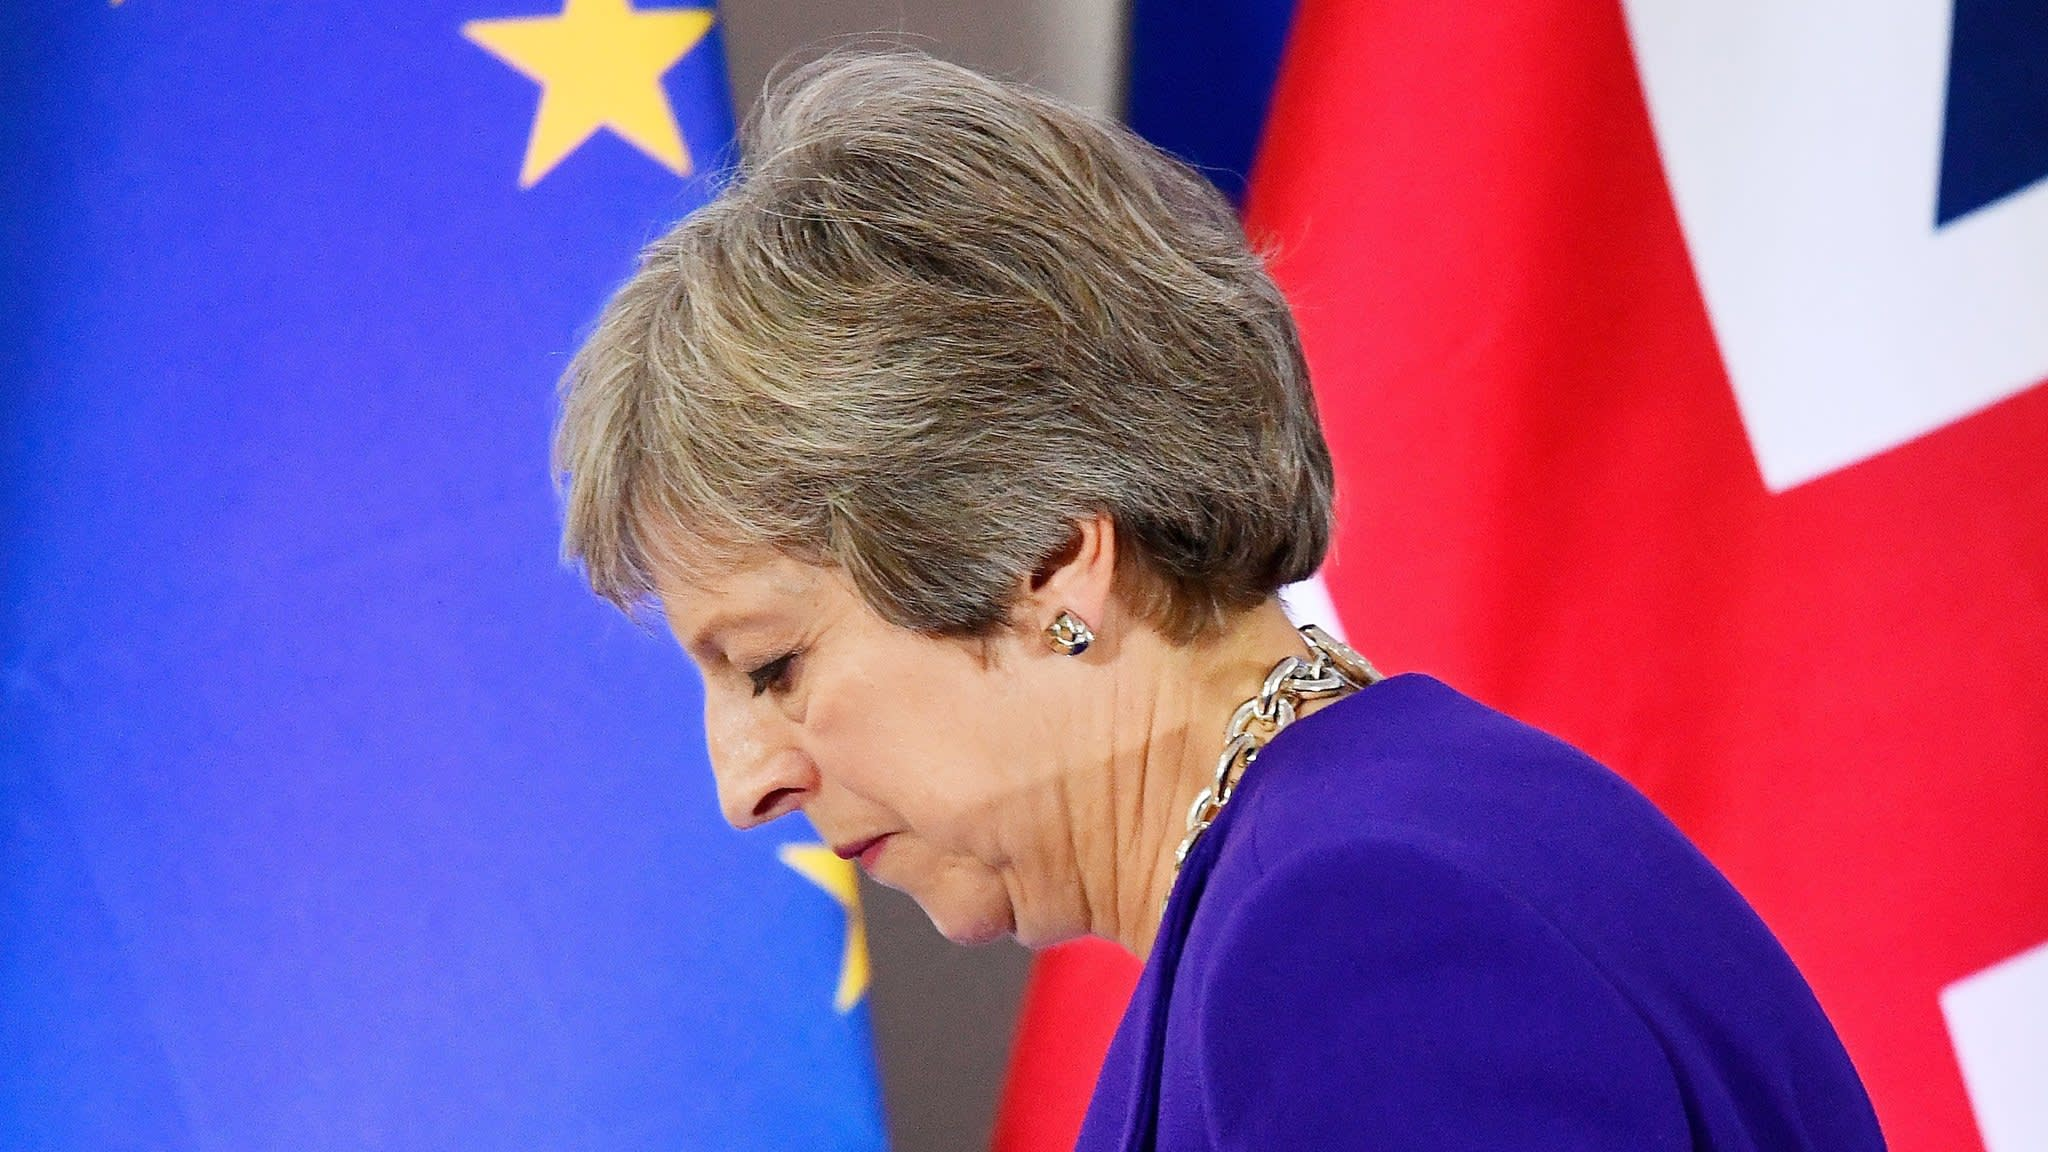 The EU could, and should, help Theresa May's deal pass   Financial Times